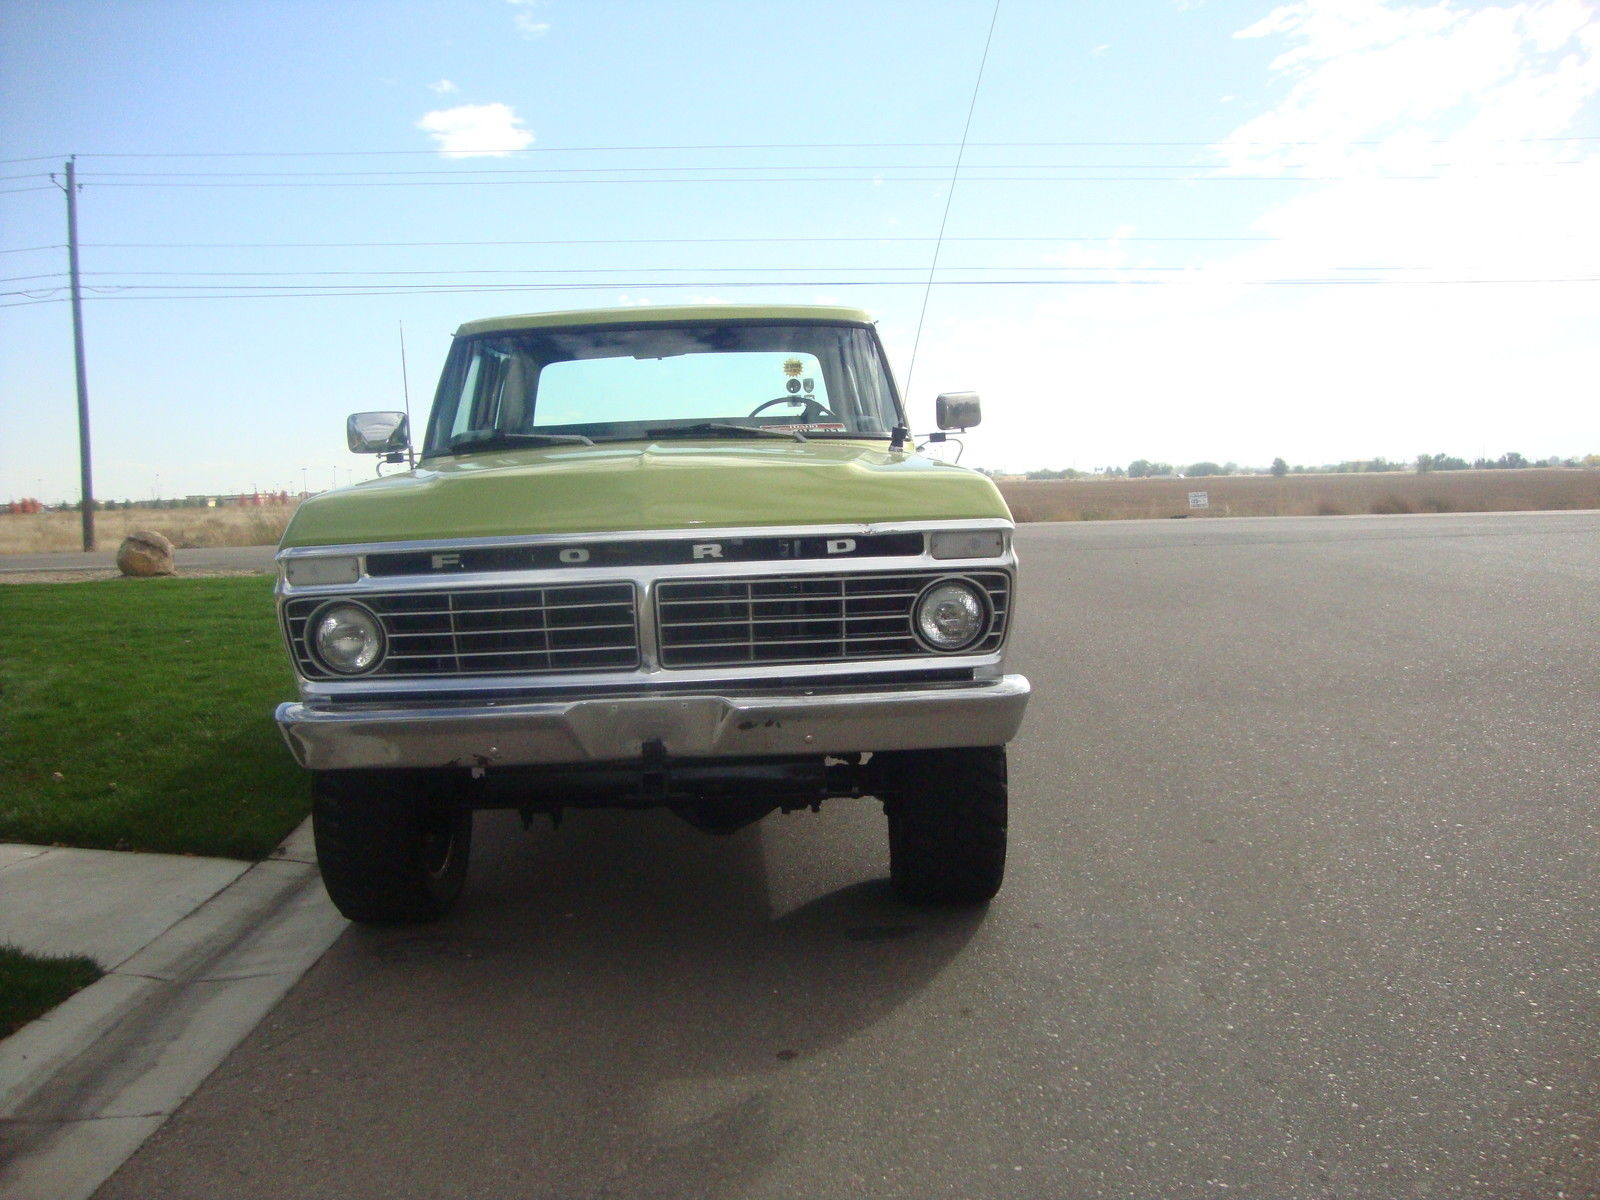 1974 ford f250 crew cab 4 door 4x4 in excellent shape see. Black Bedroom Furniture Sets. Home Design Ideas